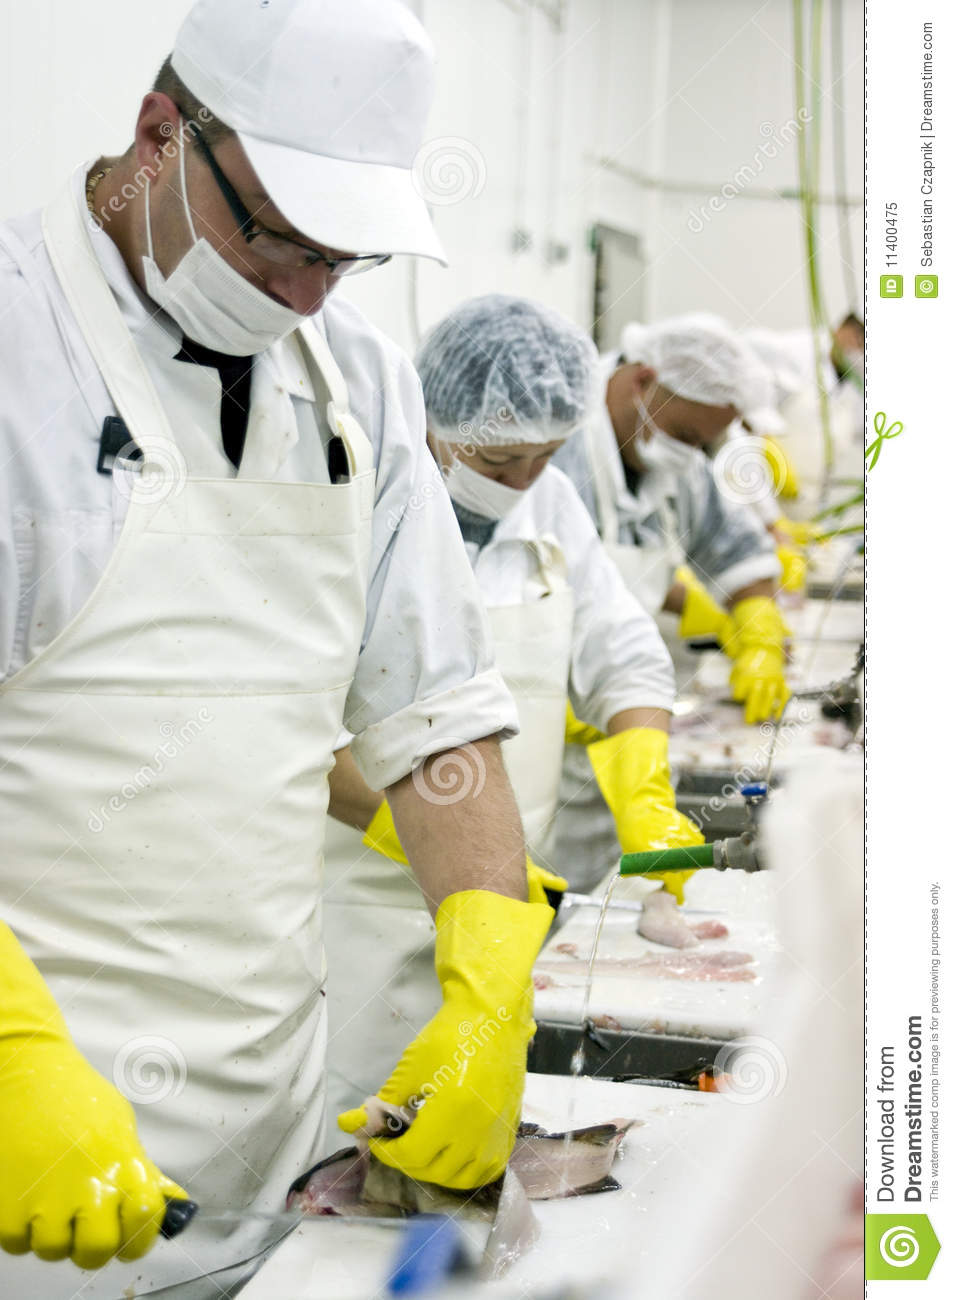 fish cleaning assembly line royalty free stock photo